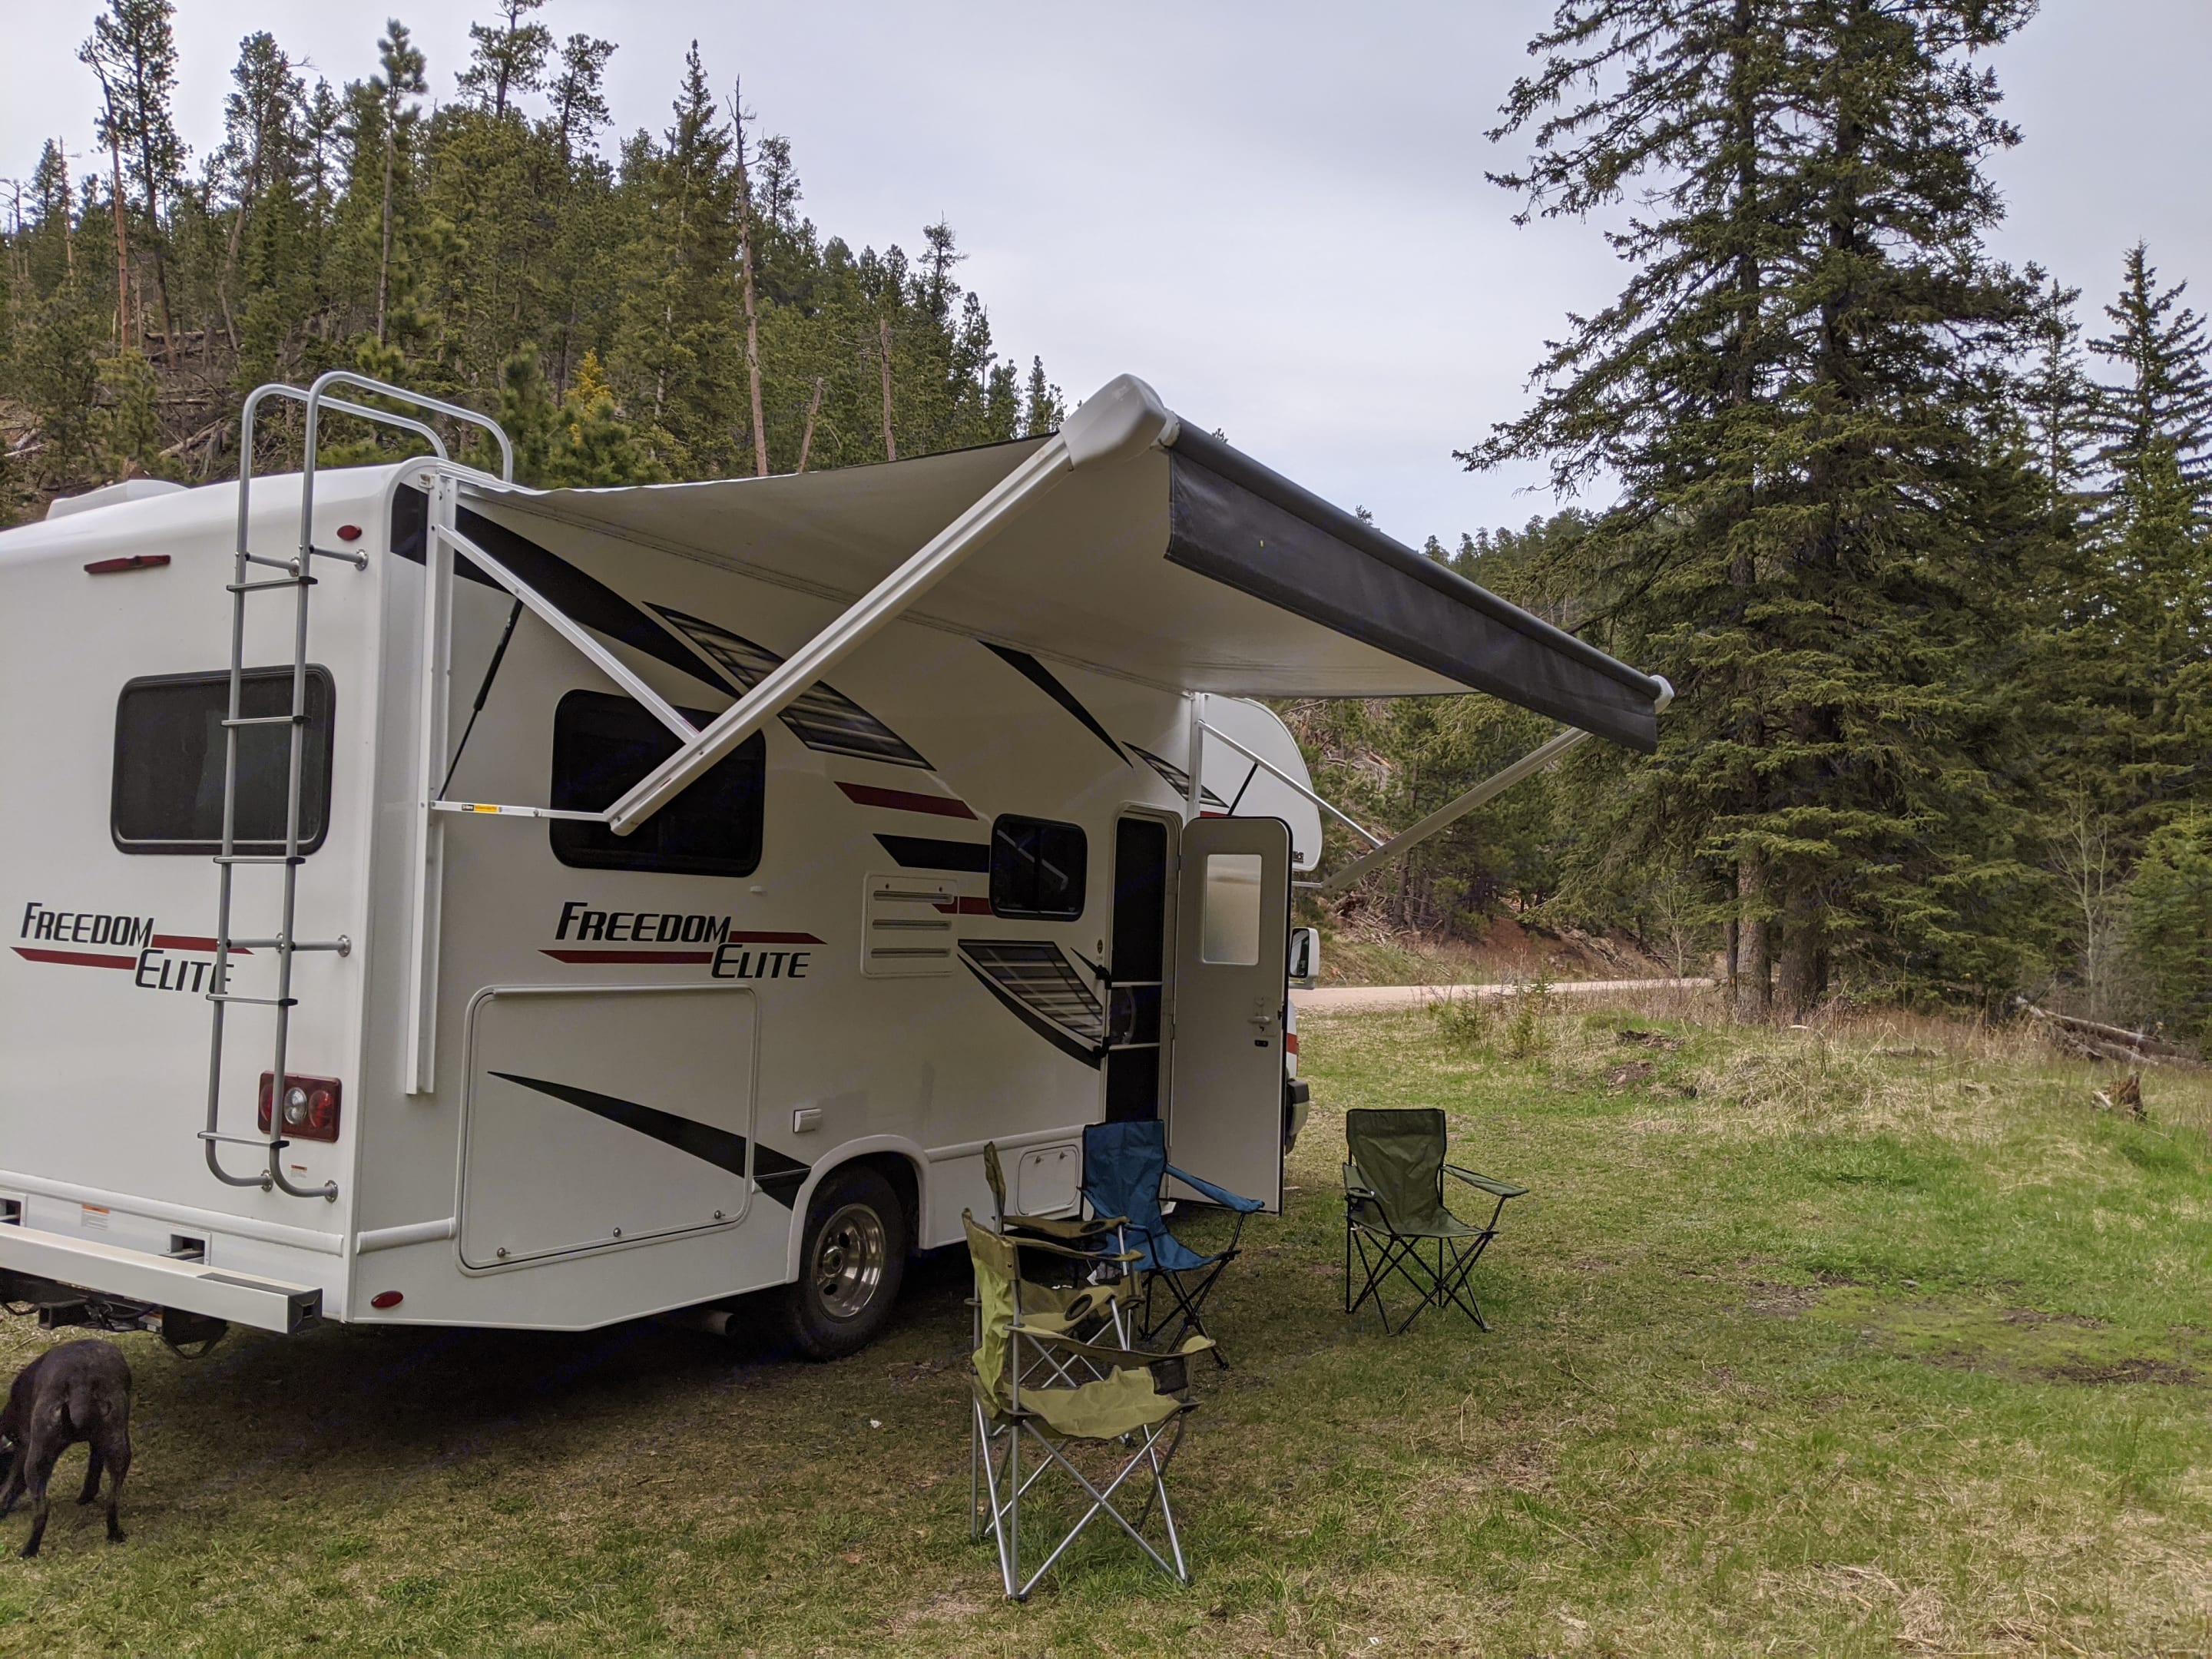 Awning out in the forest. Thor Motor Coach Freedom Elite 2020